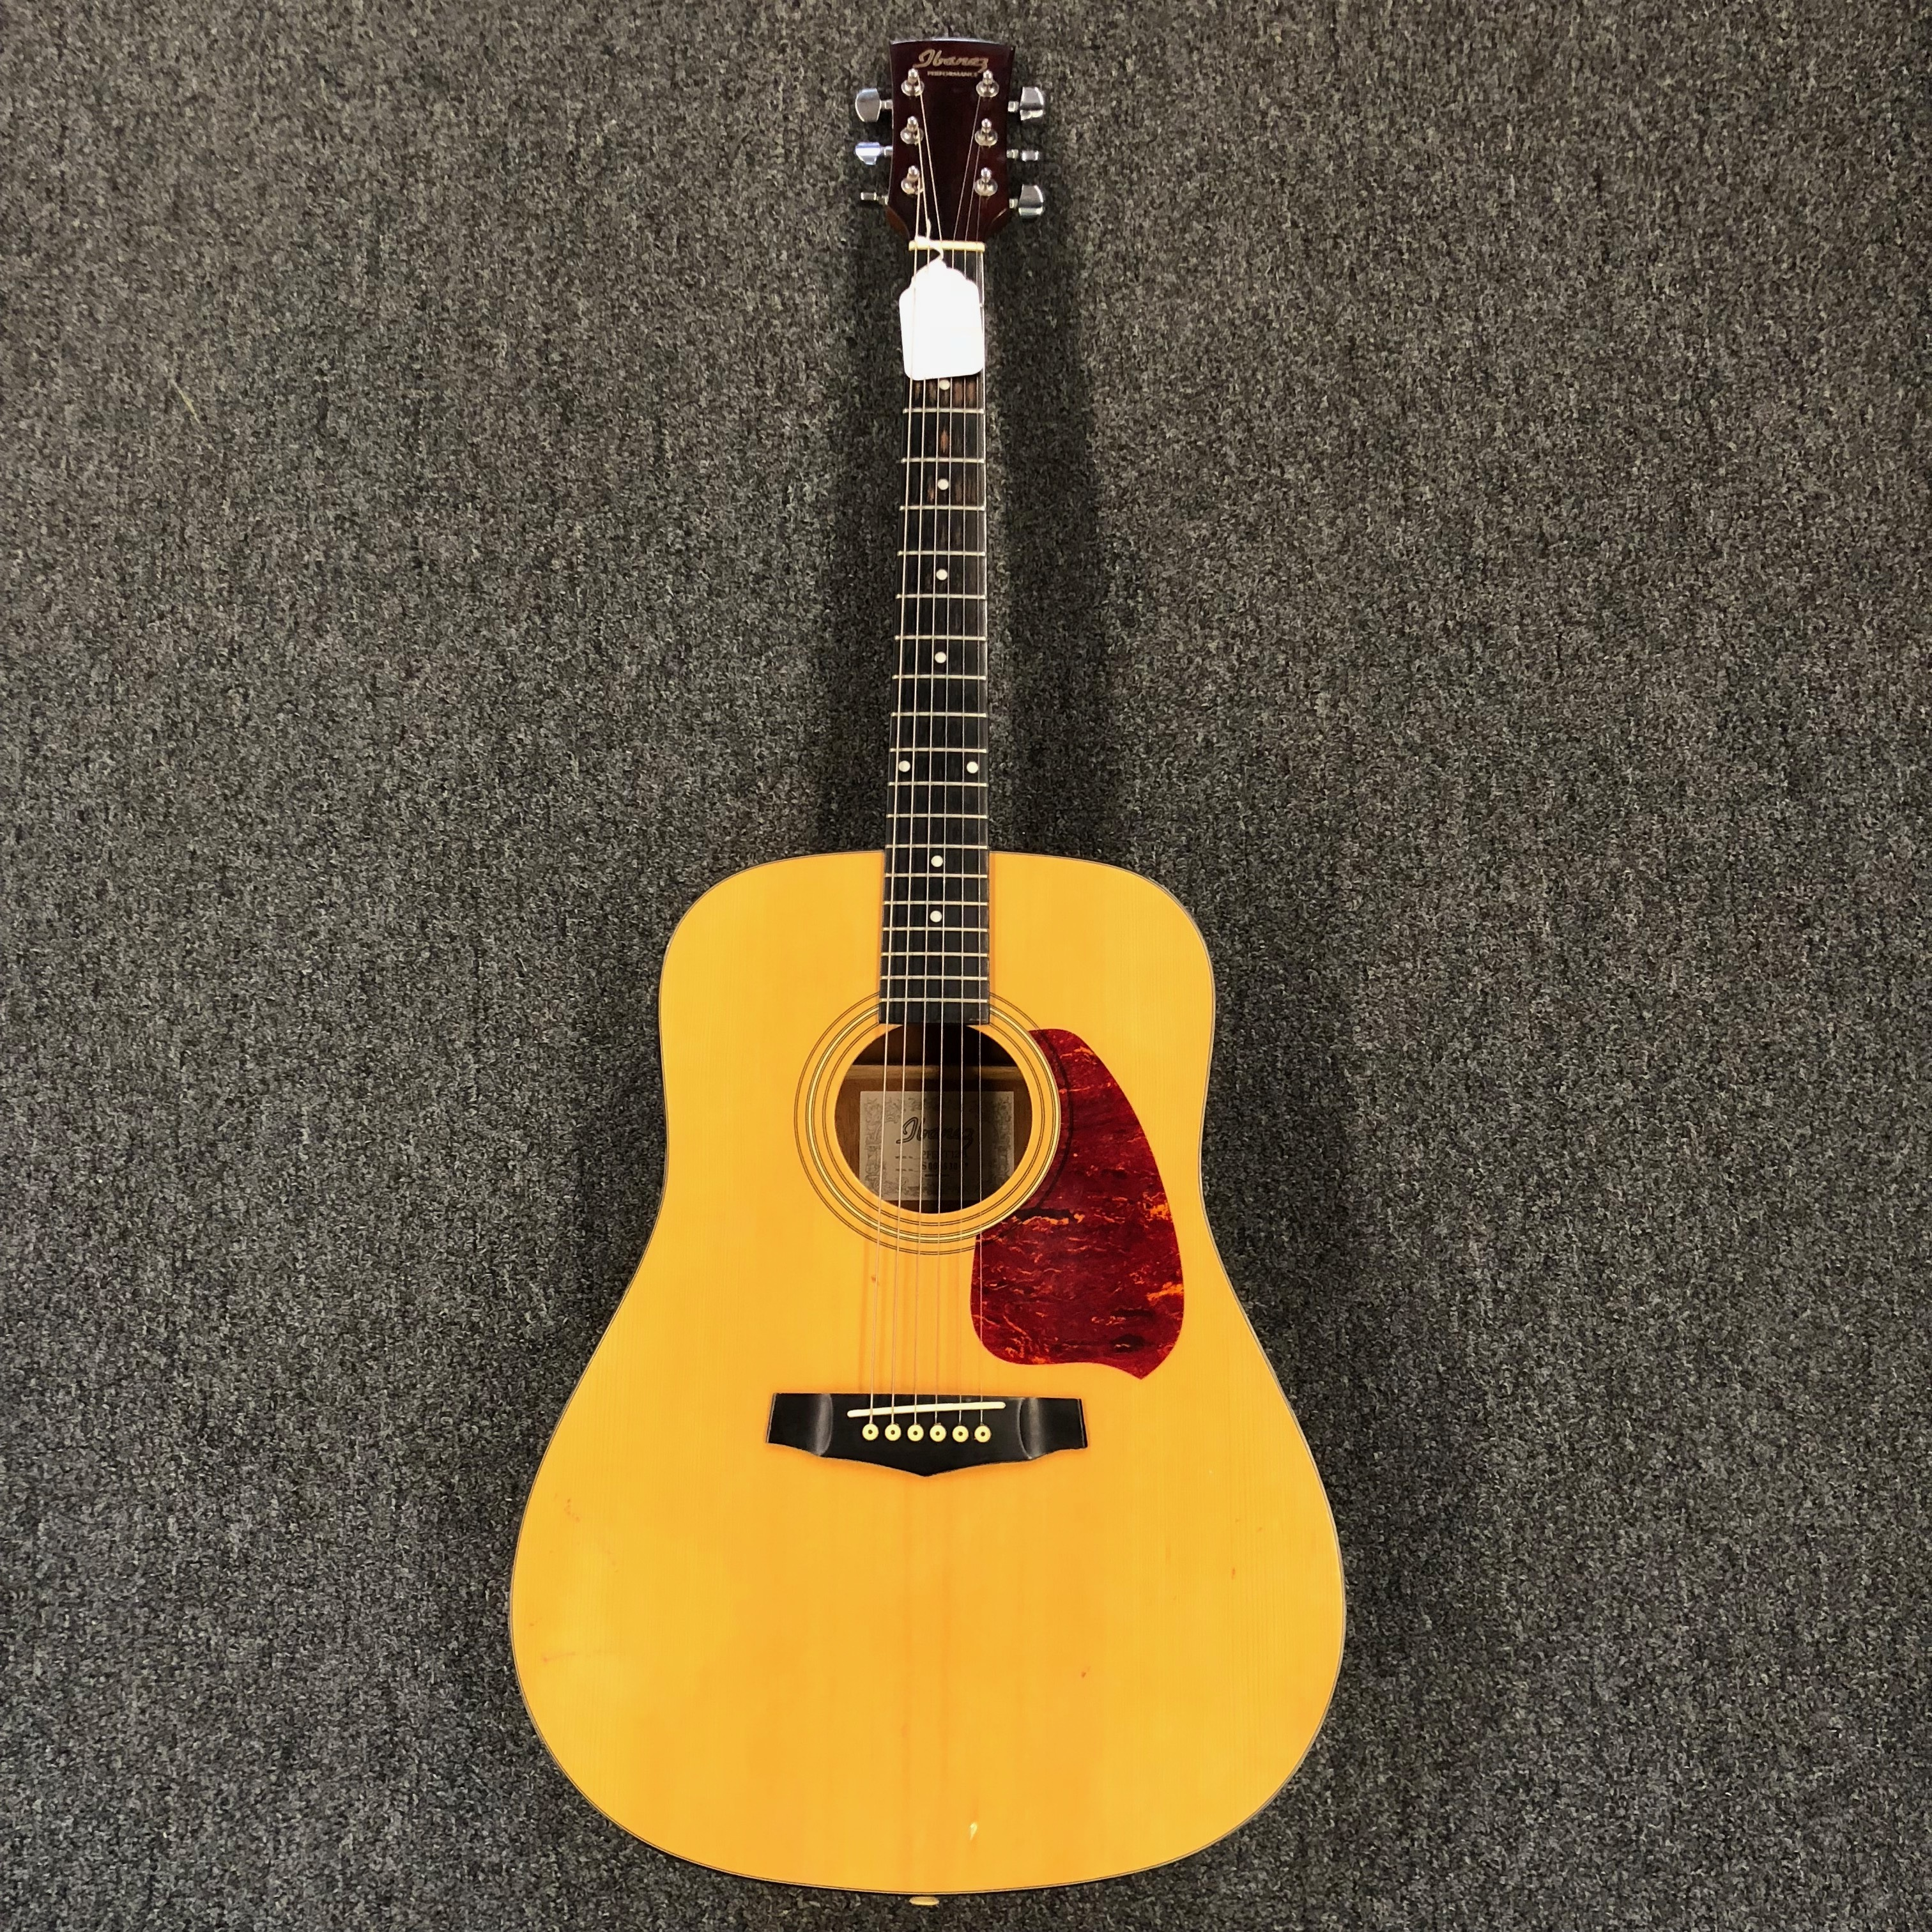 IBANEZ - PF5NT1201 - GUITAR/ACOUSTIC MUSICAL INSTRUMENTS